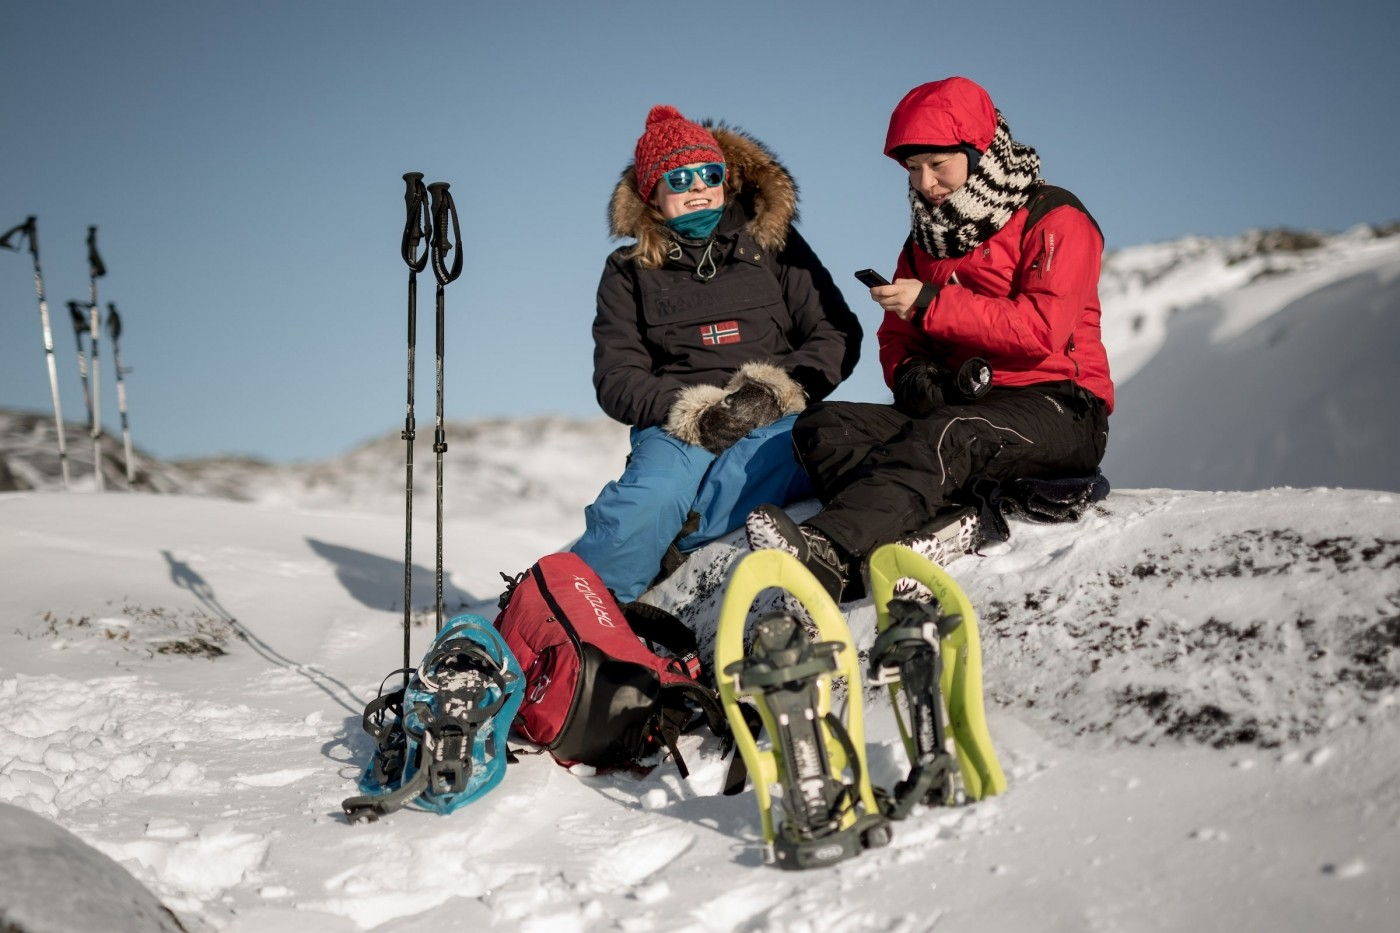 Two snowshoers taking a break to update their lives on social media near Iluissat in Greenland. Photo by Mads Pihl - Visit Greenland